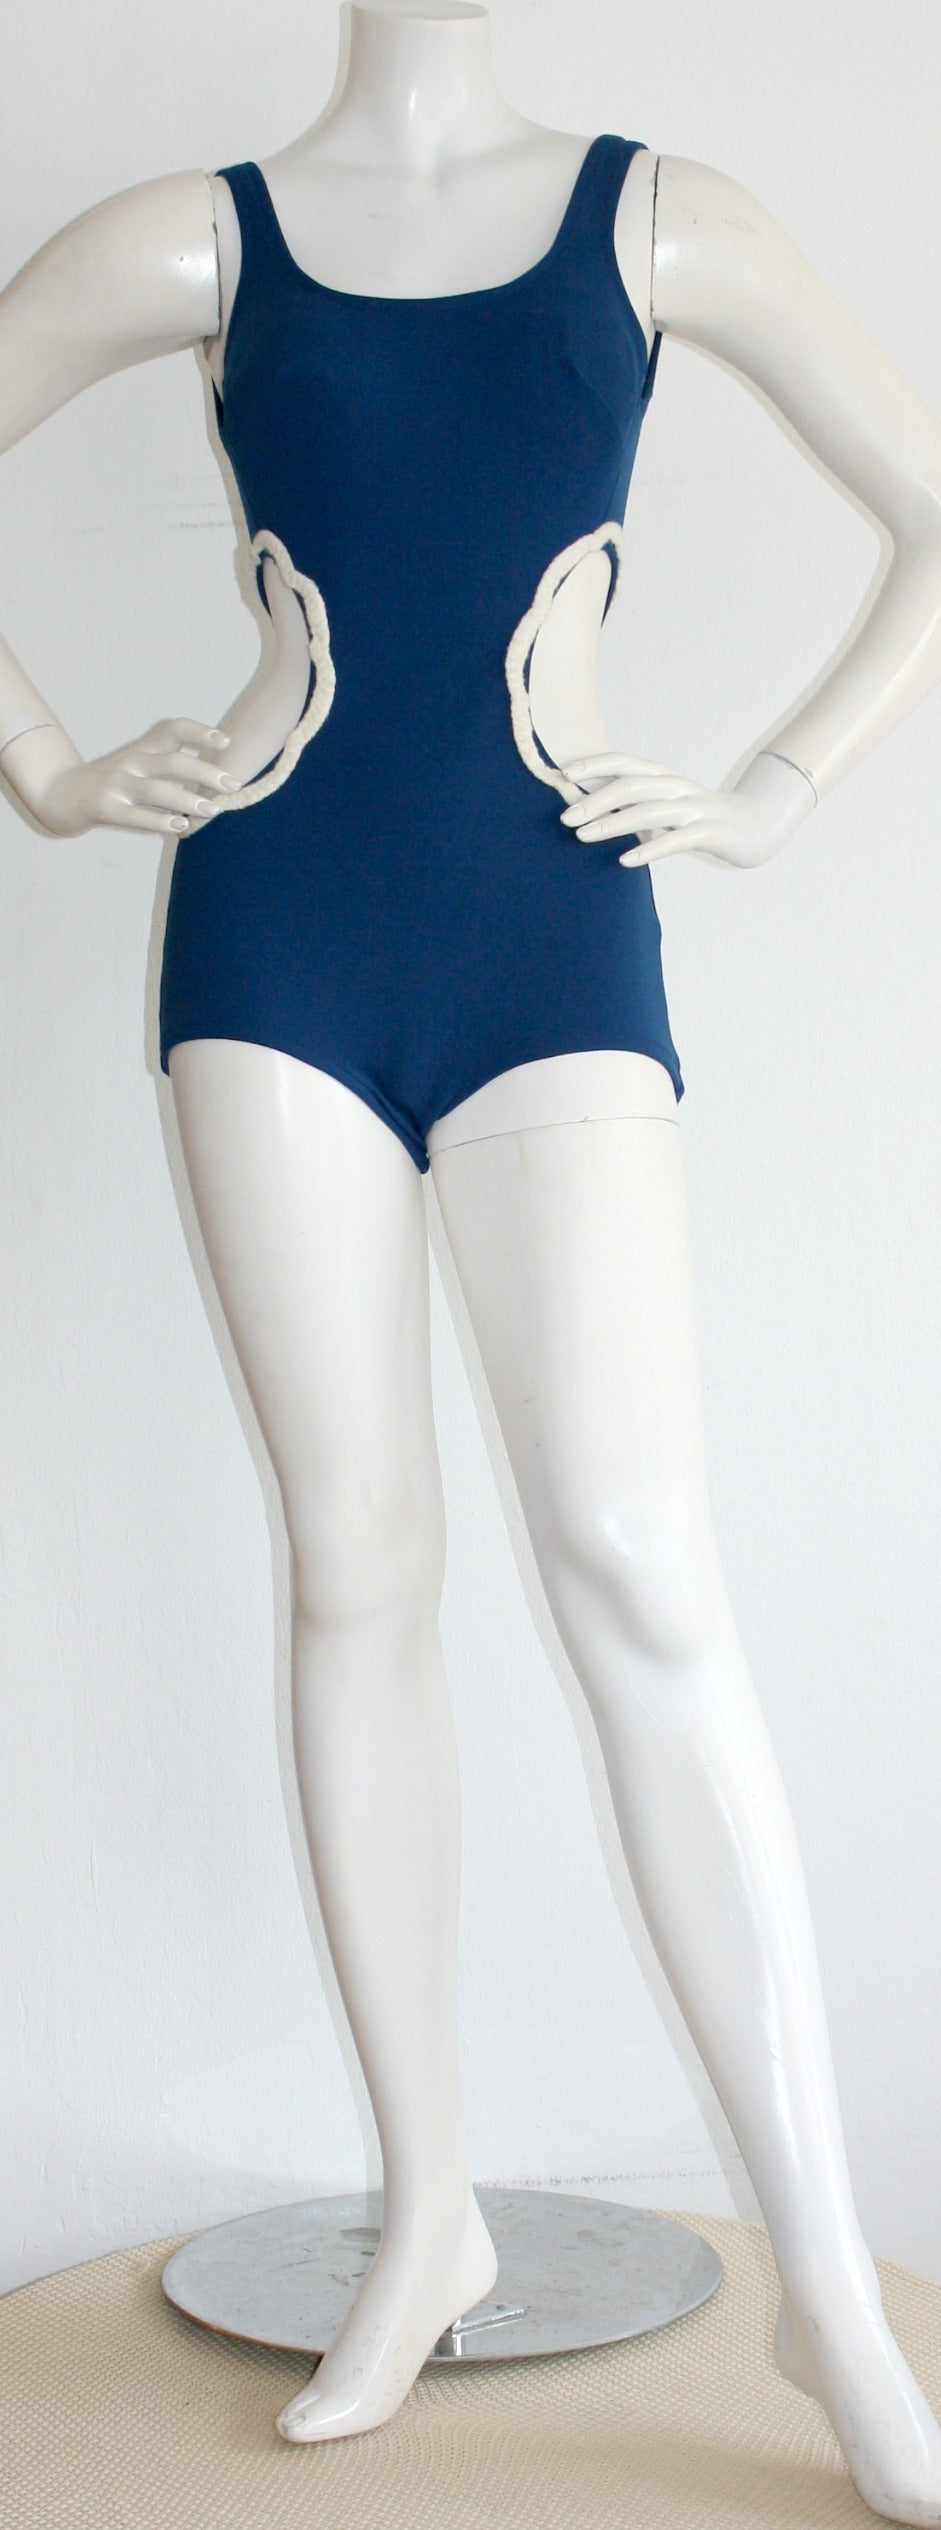 Incredibly chic vintage Oleg Cassini one-piece cut-out 1960s swimsuit. Features cut-outs at either side of the waist, to exude a fit silhouette. Beautiful royal blue color. Perfect for the pool or beach. In great condition. Approximately Size